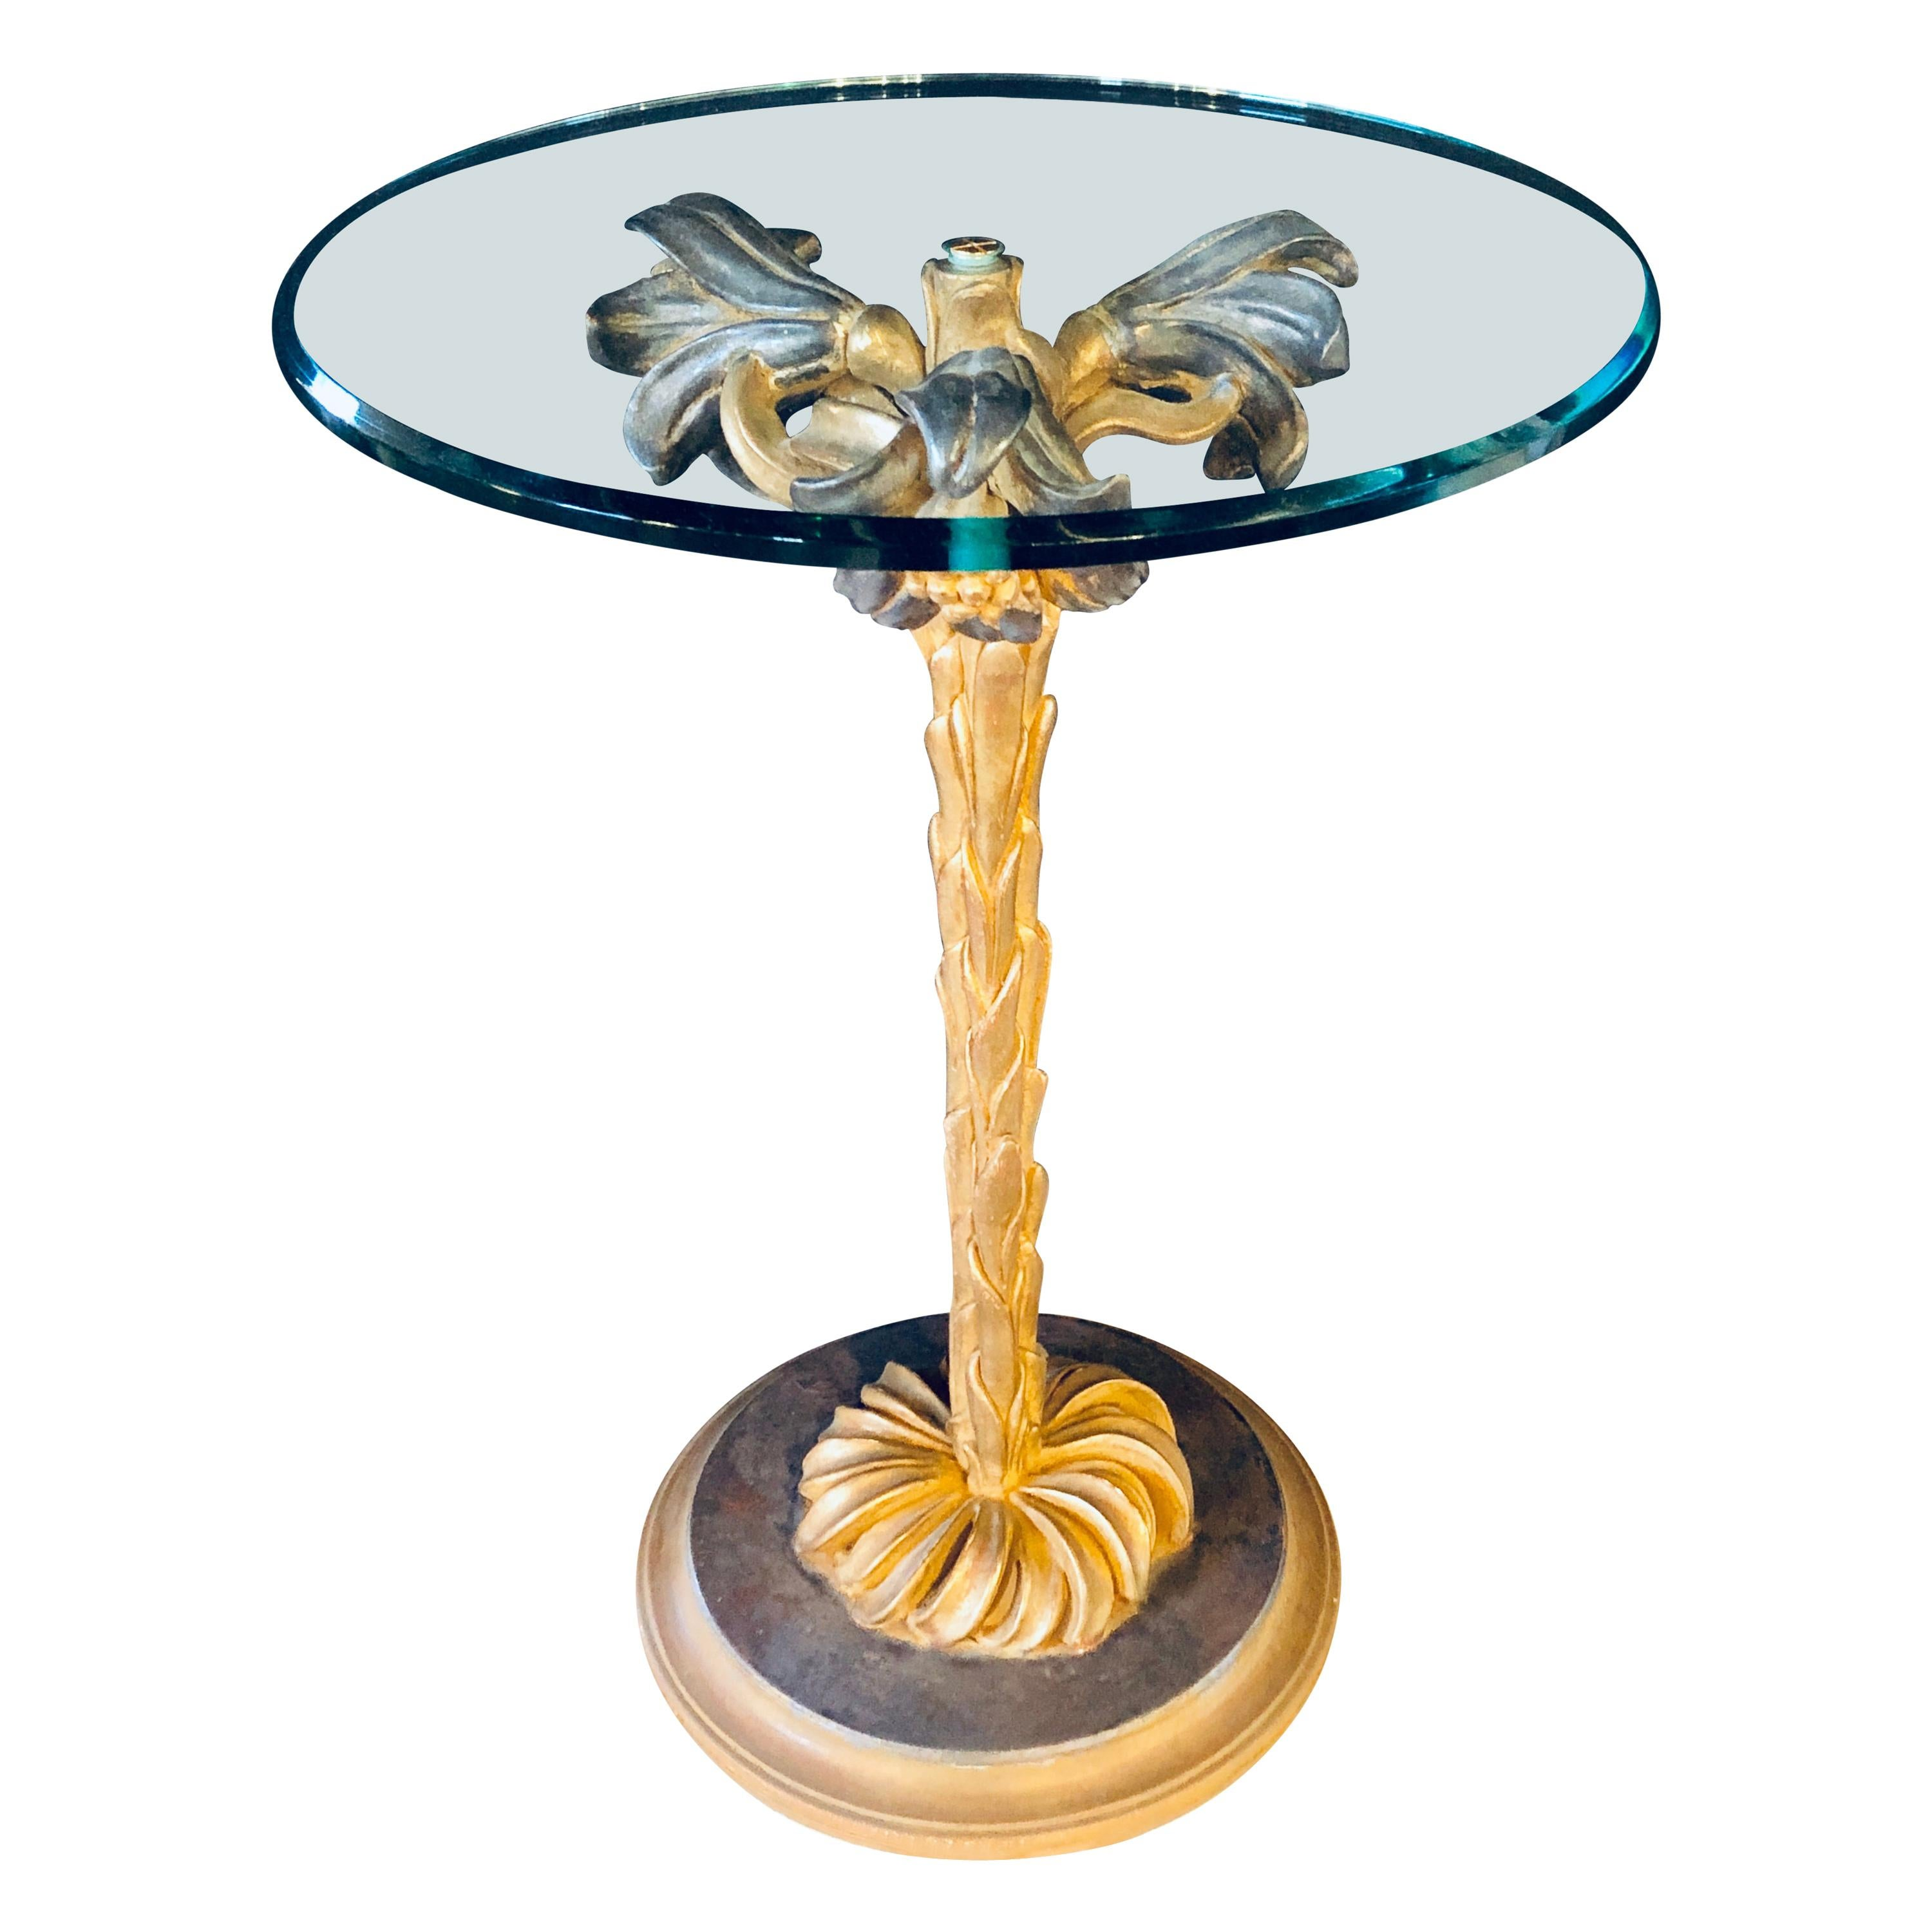 Diminutive Italian Glass Top Palm Tree Form End or Side Table or Candle-Stand